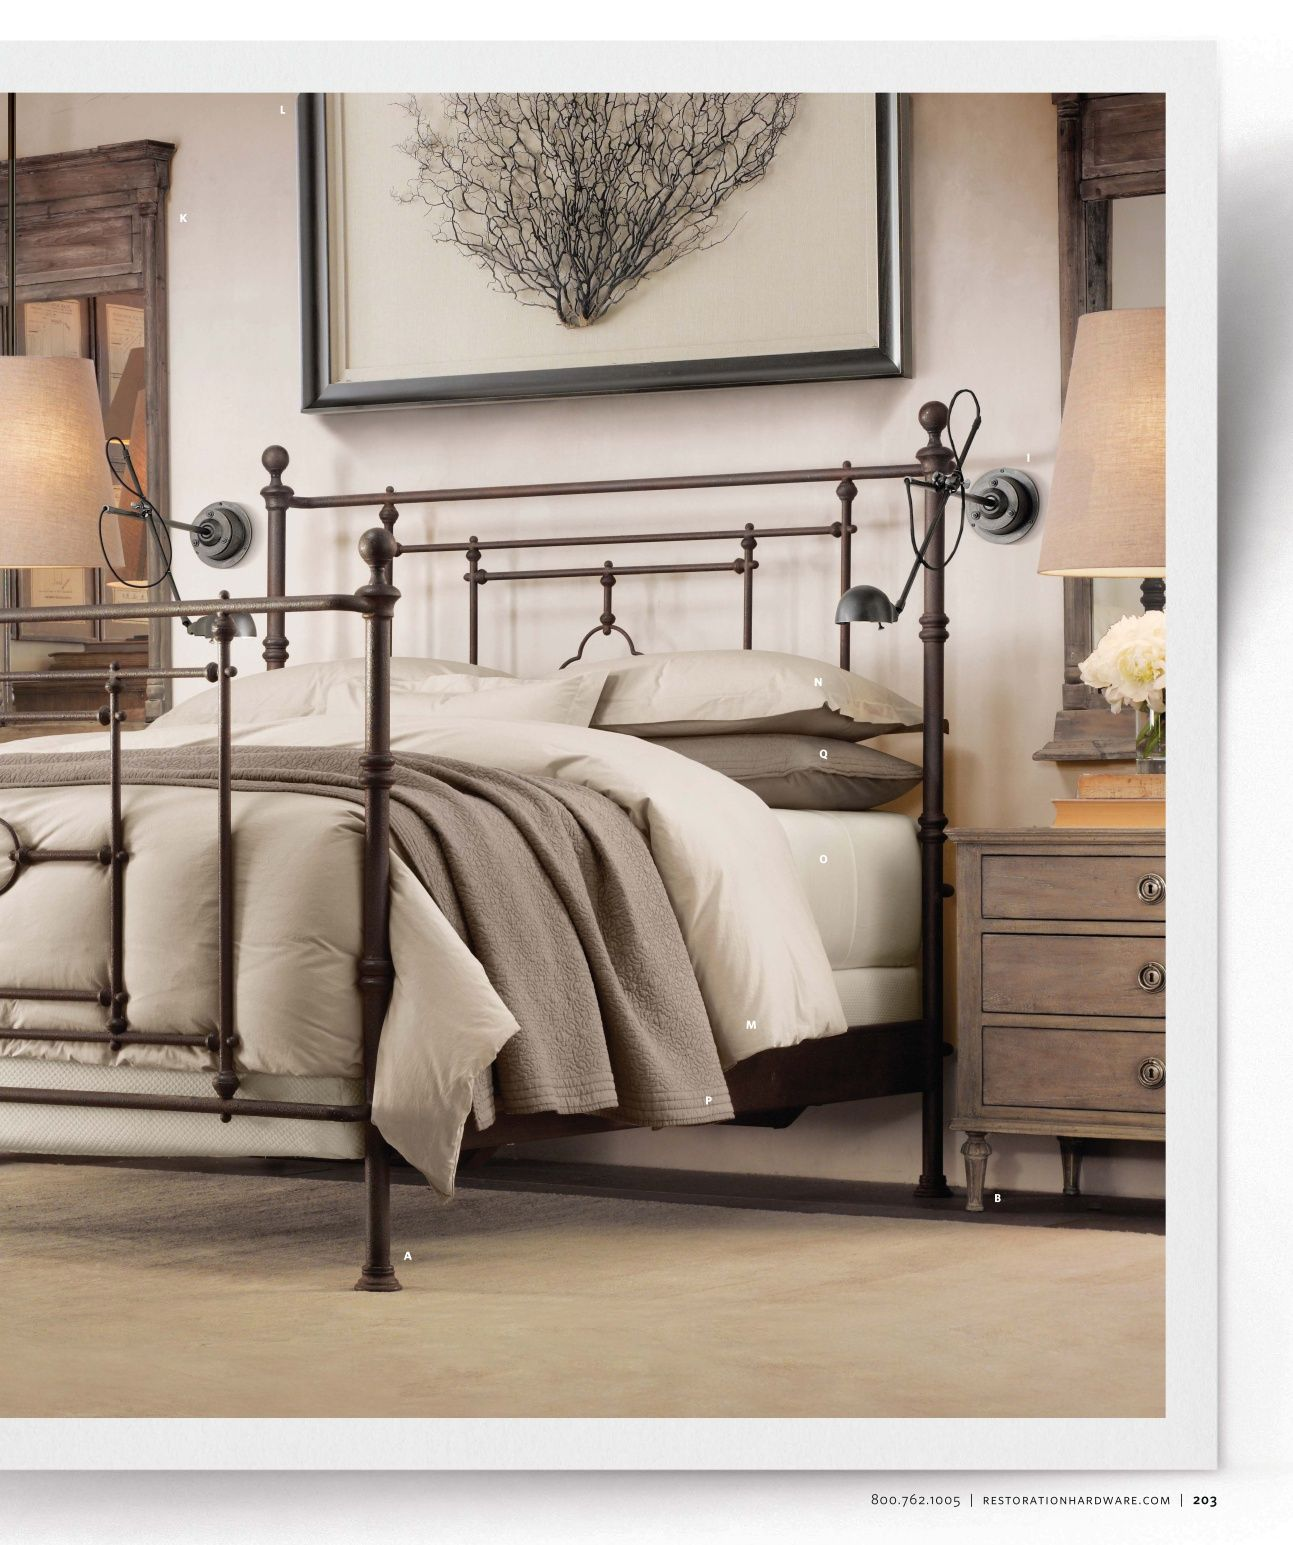 2012 Fall Catalog Restoration Hardware Iron bed, Home